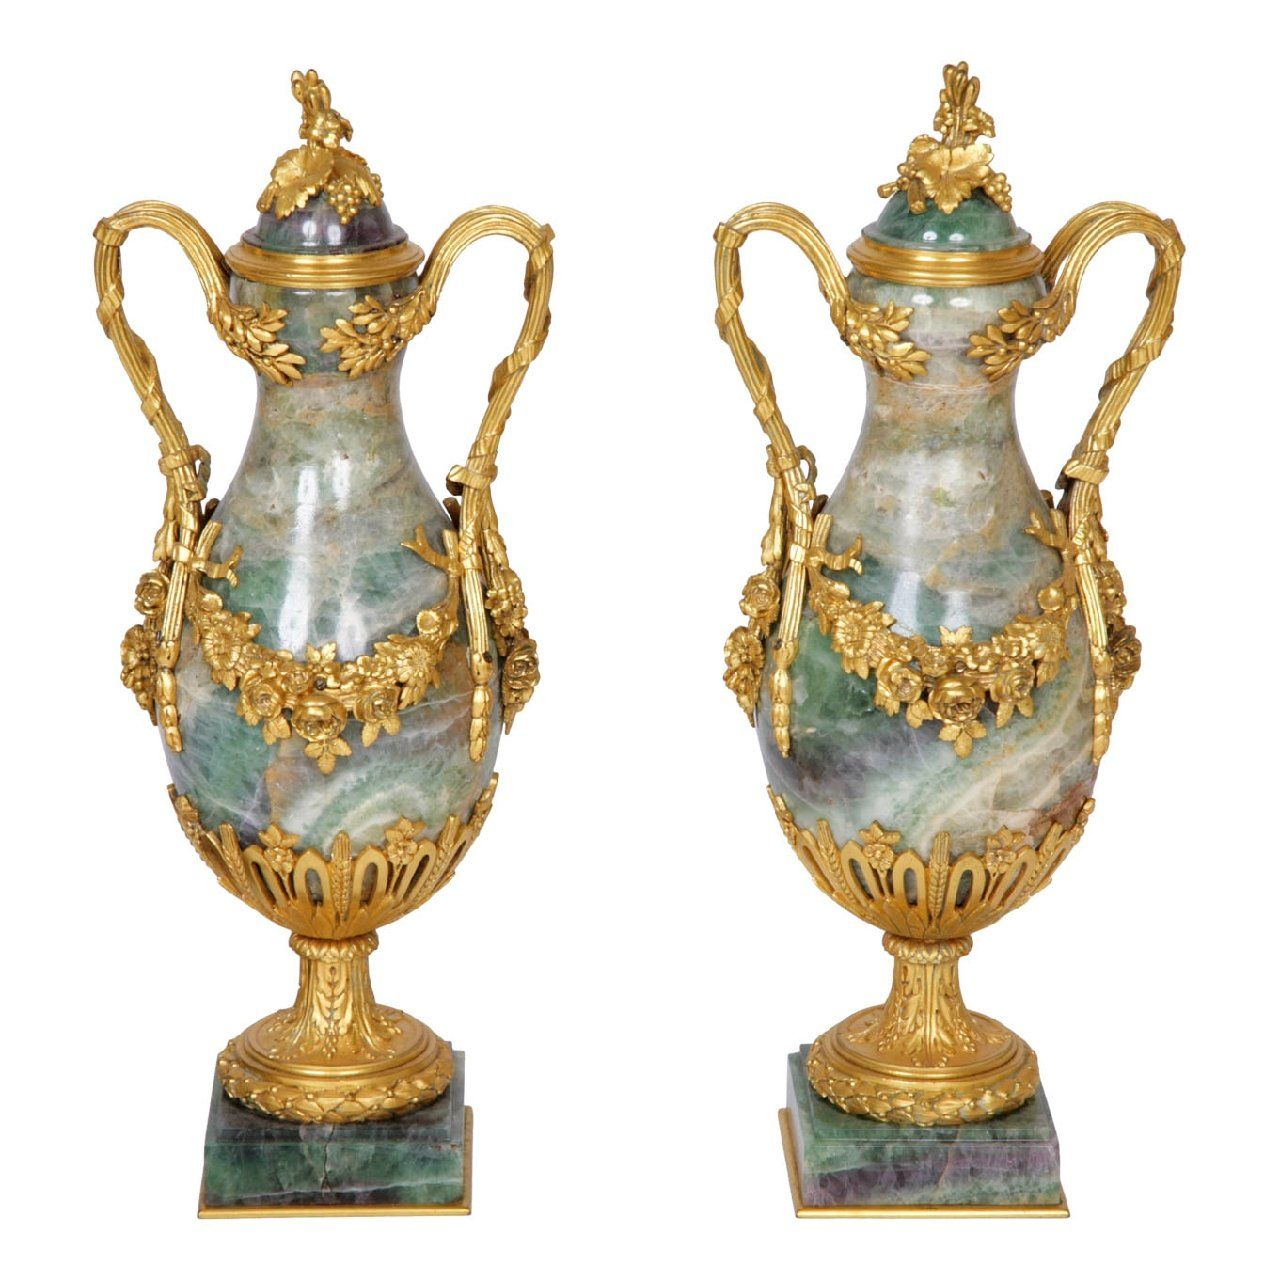 Pair Of Ormolu Mounted Fluorspar Antique French Vases